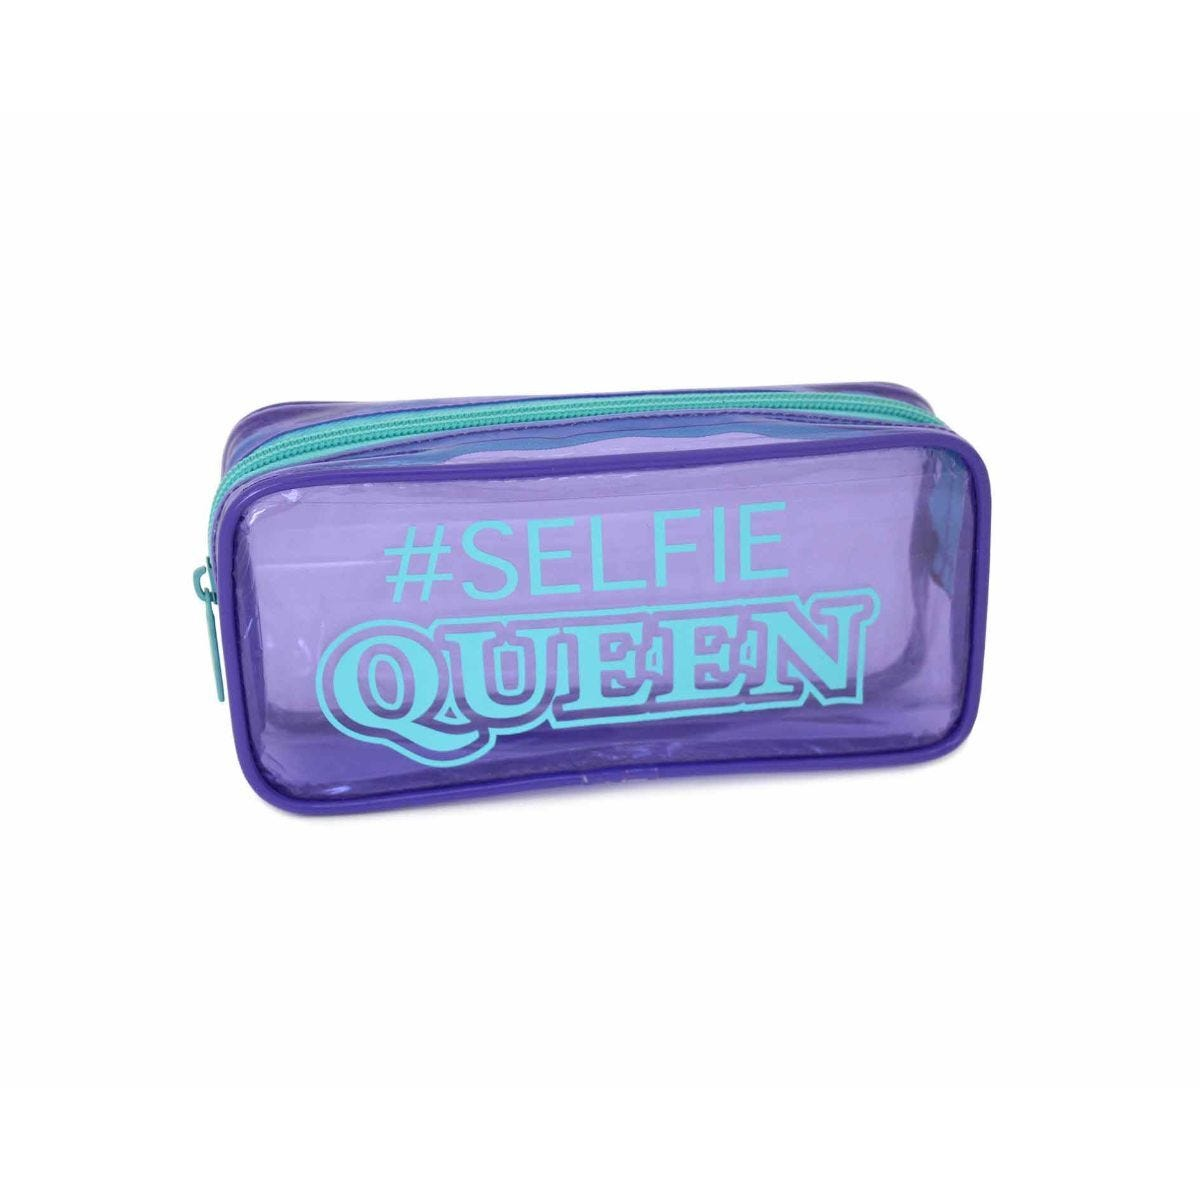 Selfie Queen and Unicorn Transparent Wedge Pencil Case Assorted